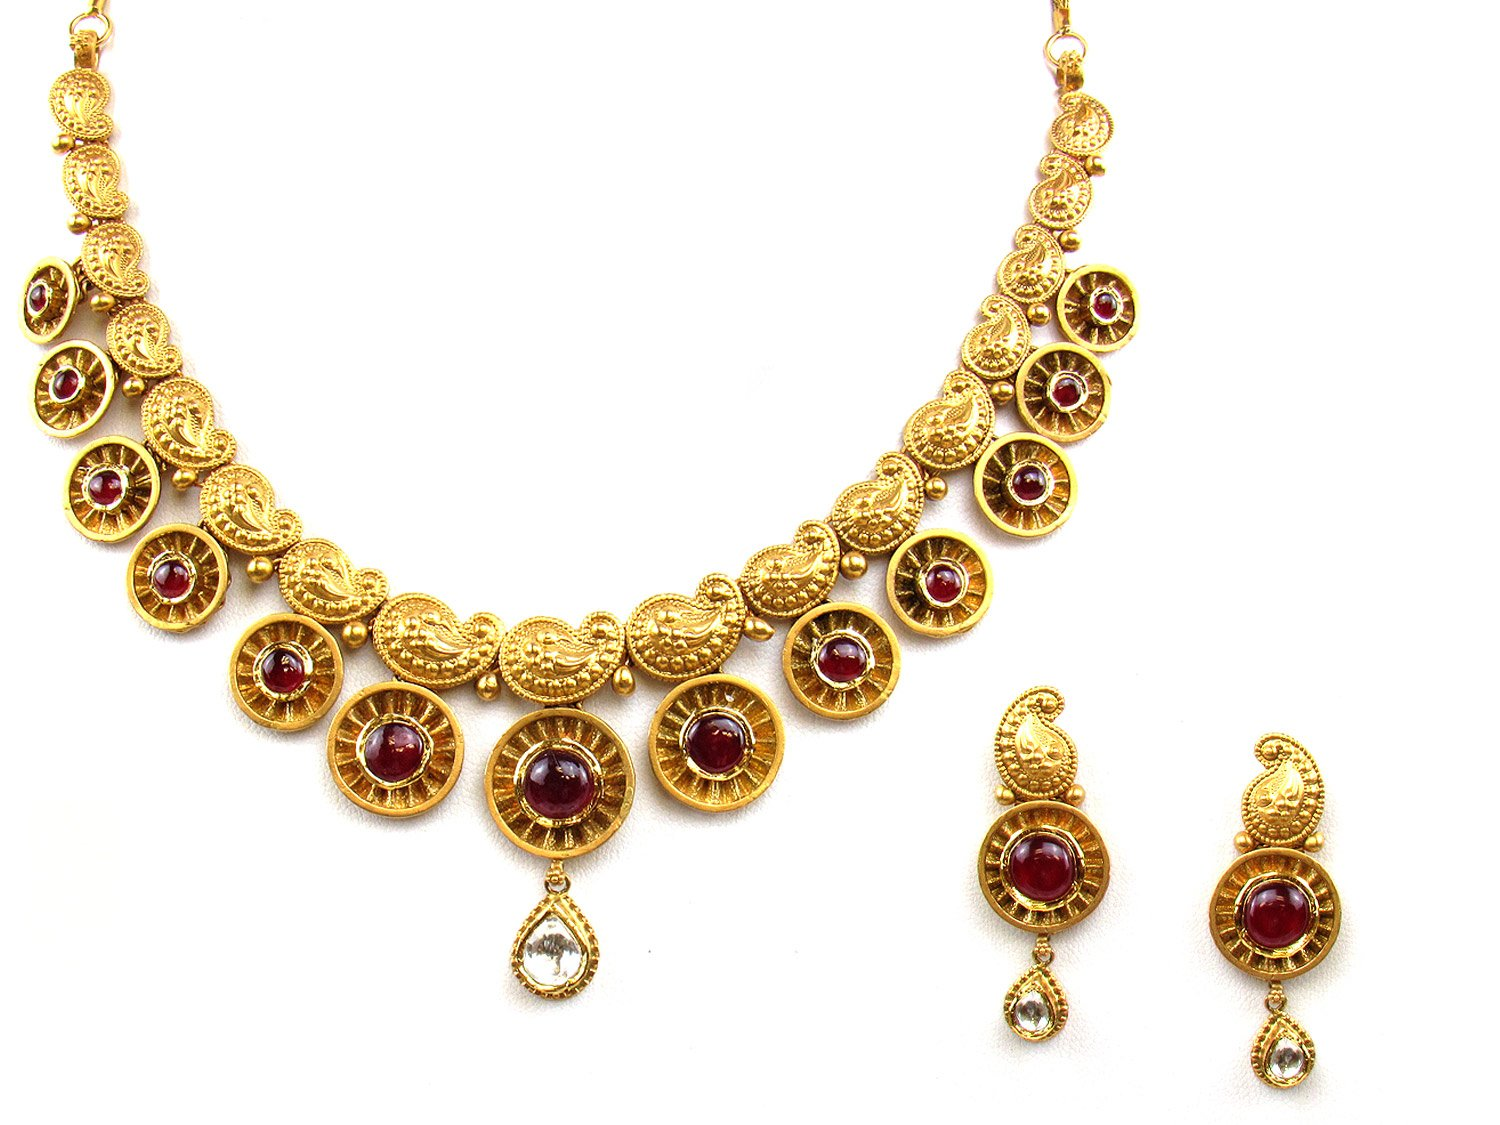 gold ek of regal nambar ladies vaddanam waist inc picture chain jewels